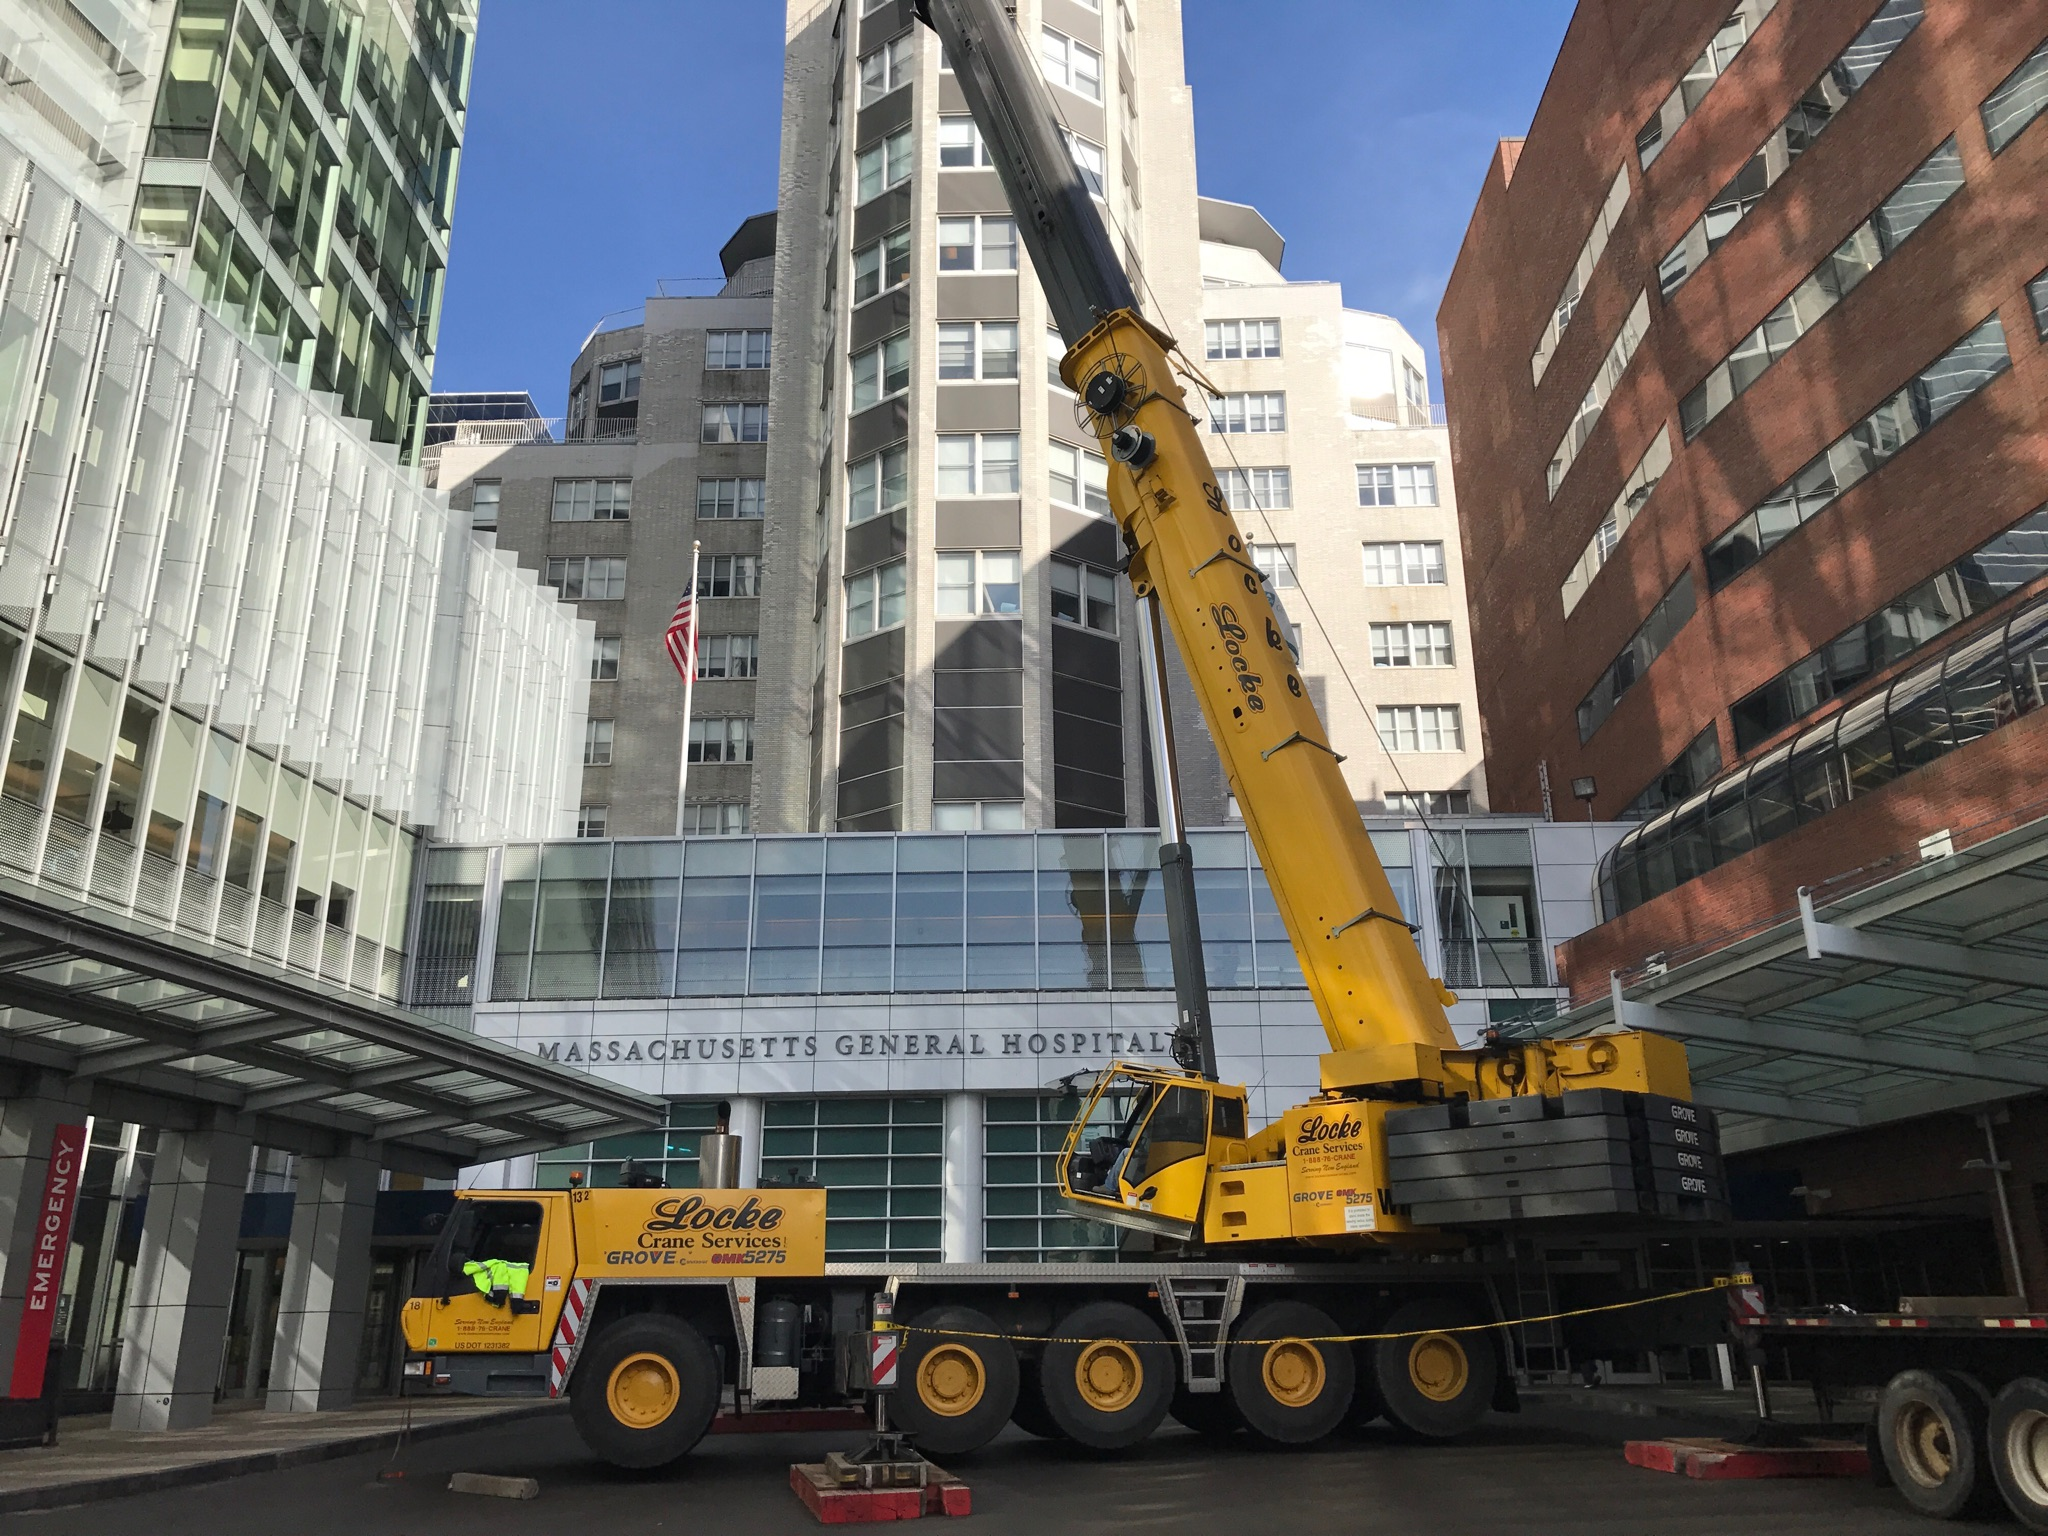 275 Ton Crane Service for rooftop units